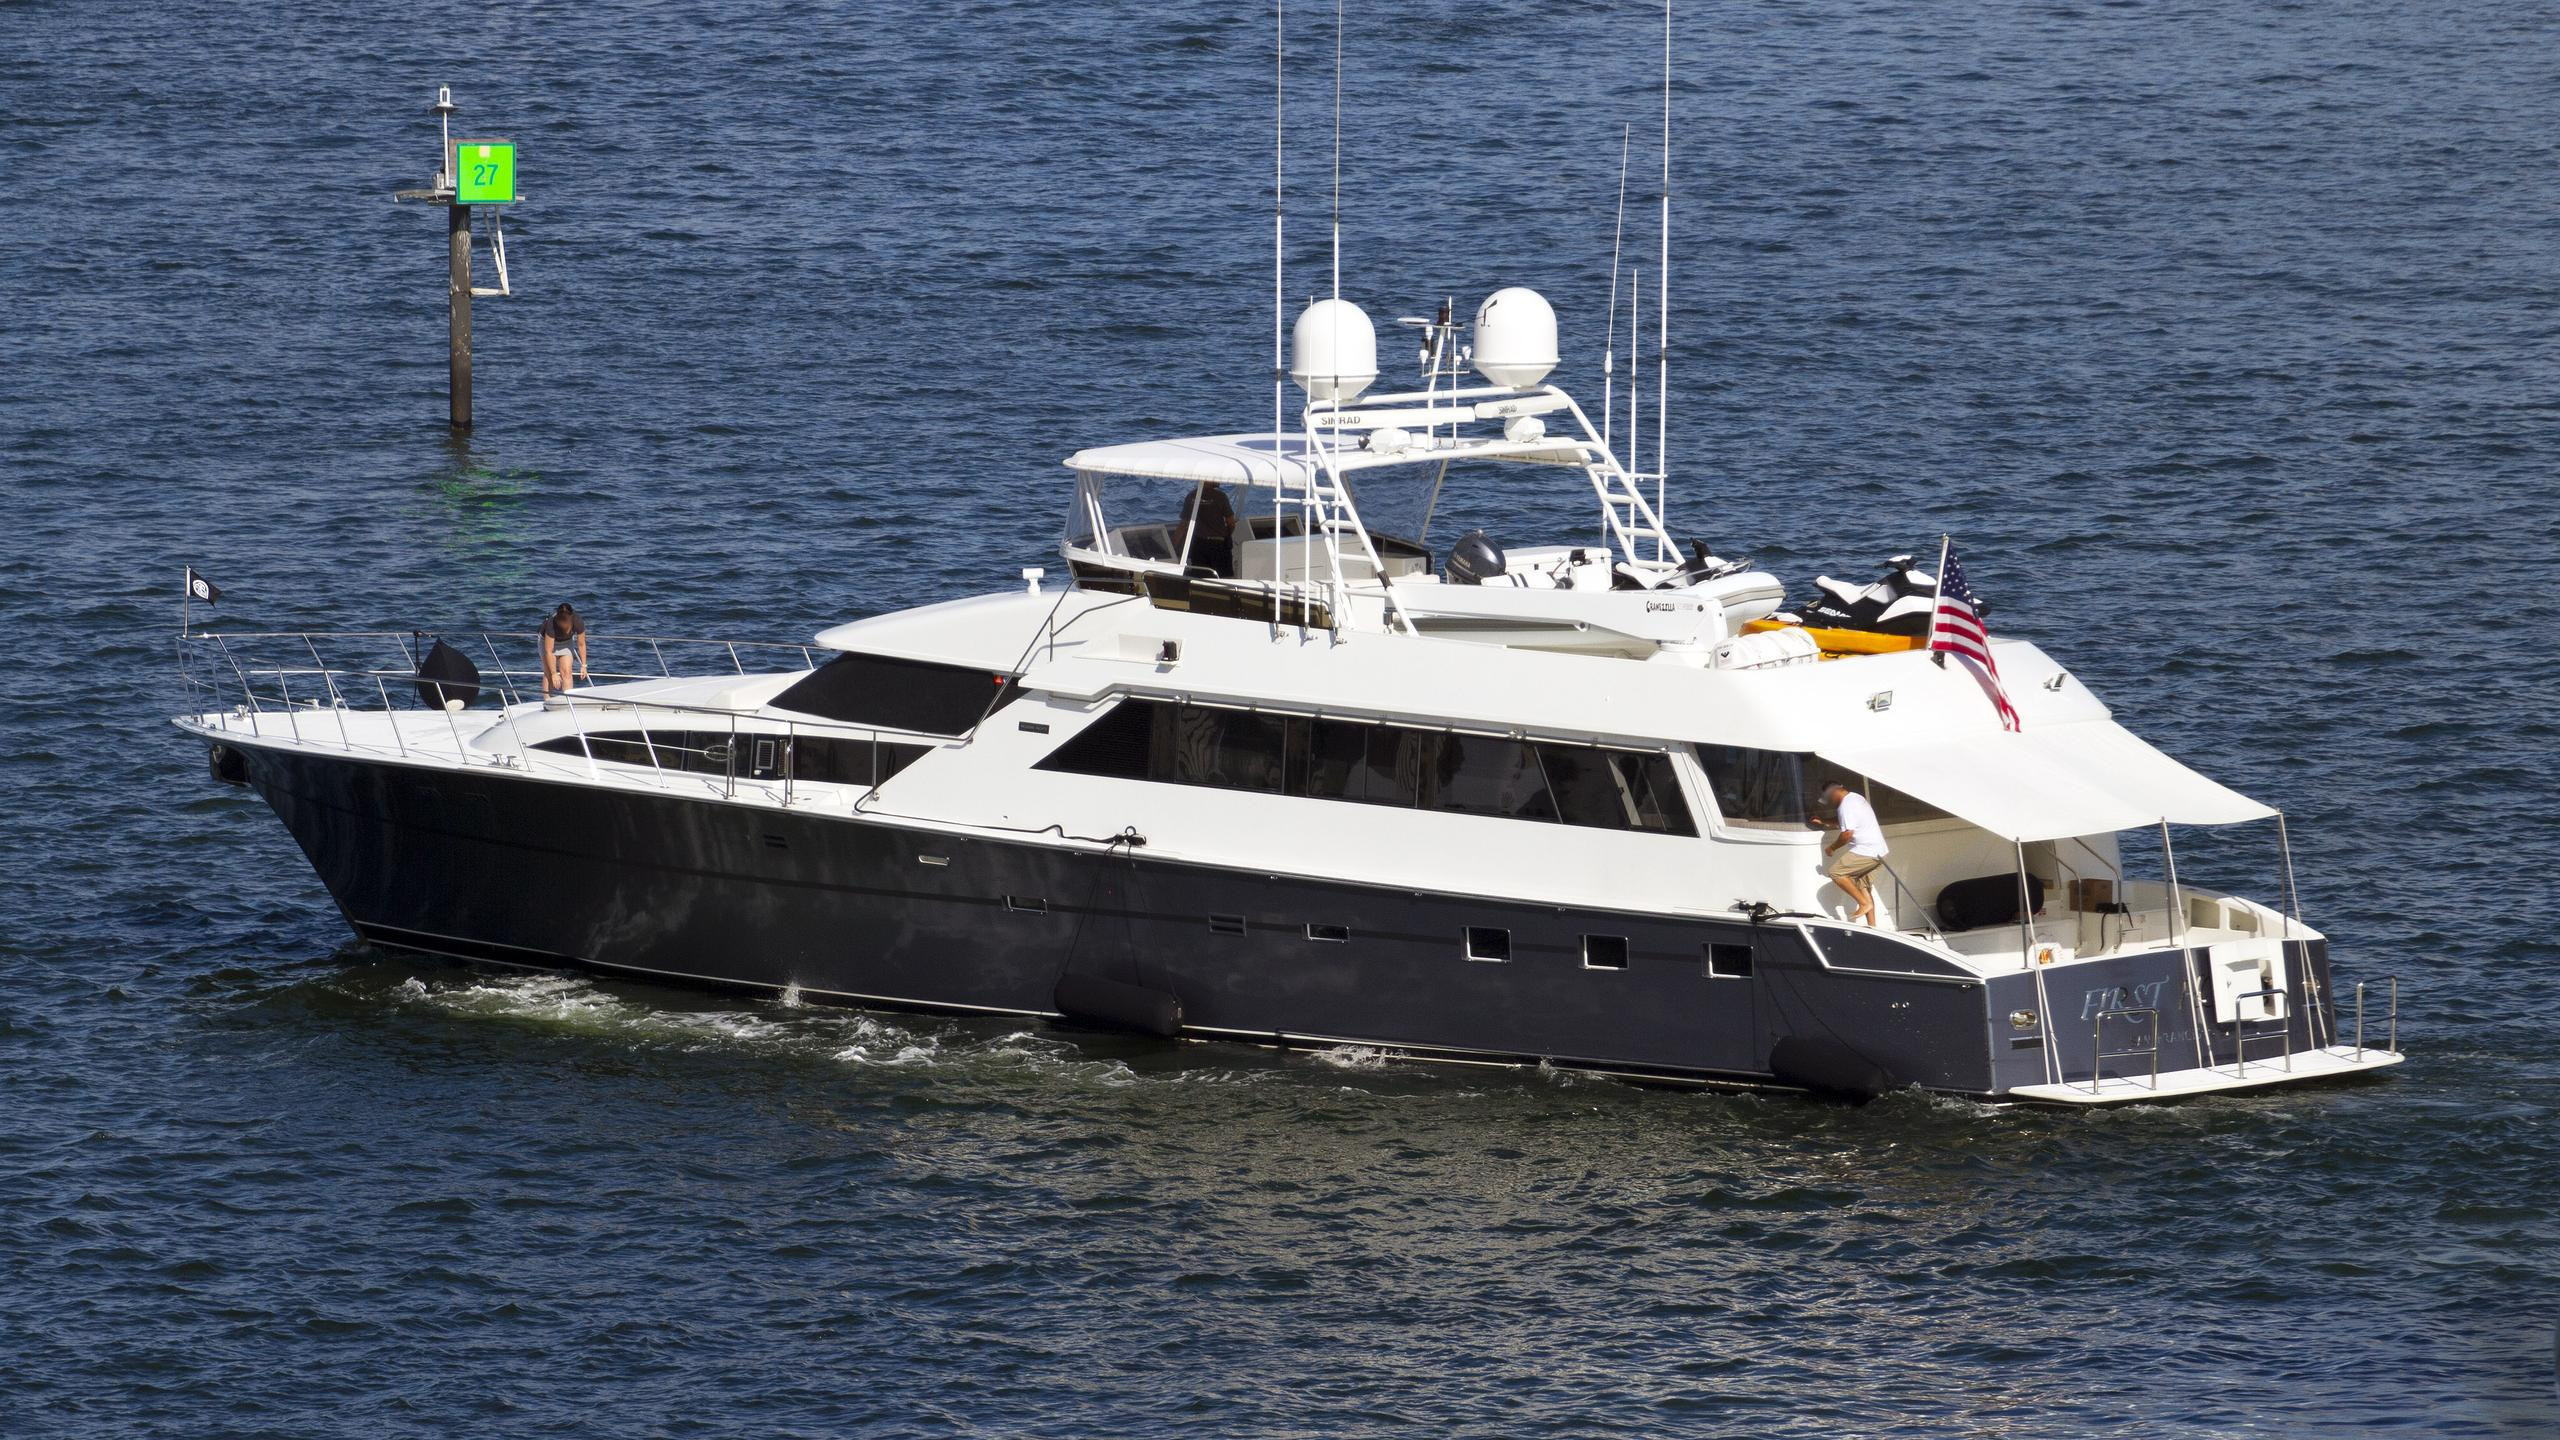 first-home-motor-yacht-cheoy-lee-92-1988-28m-cruising